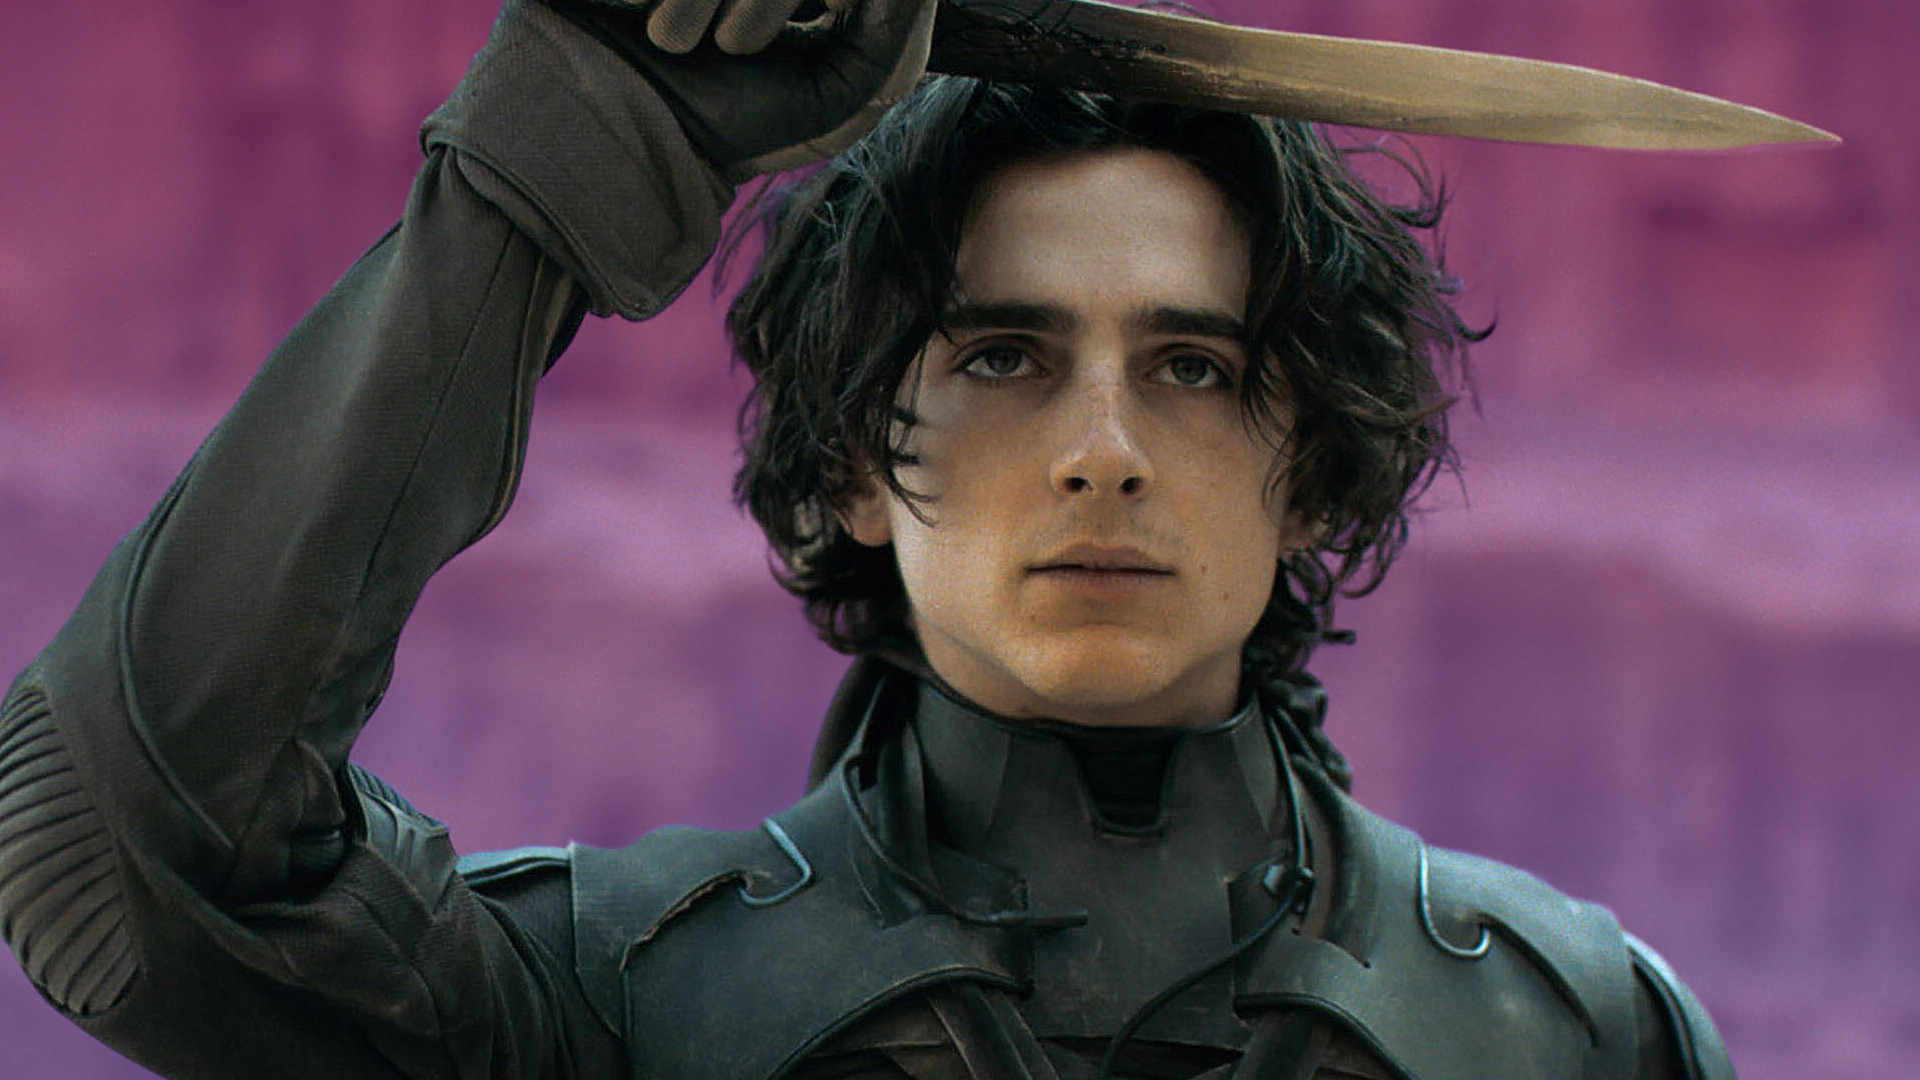 Timothée Chalamet as Paul Atreides in the movie Dune holds a knife to his forehead